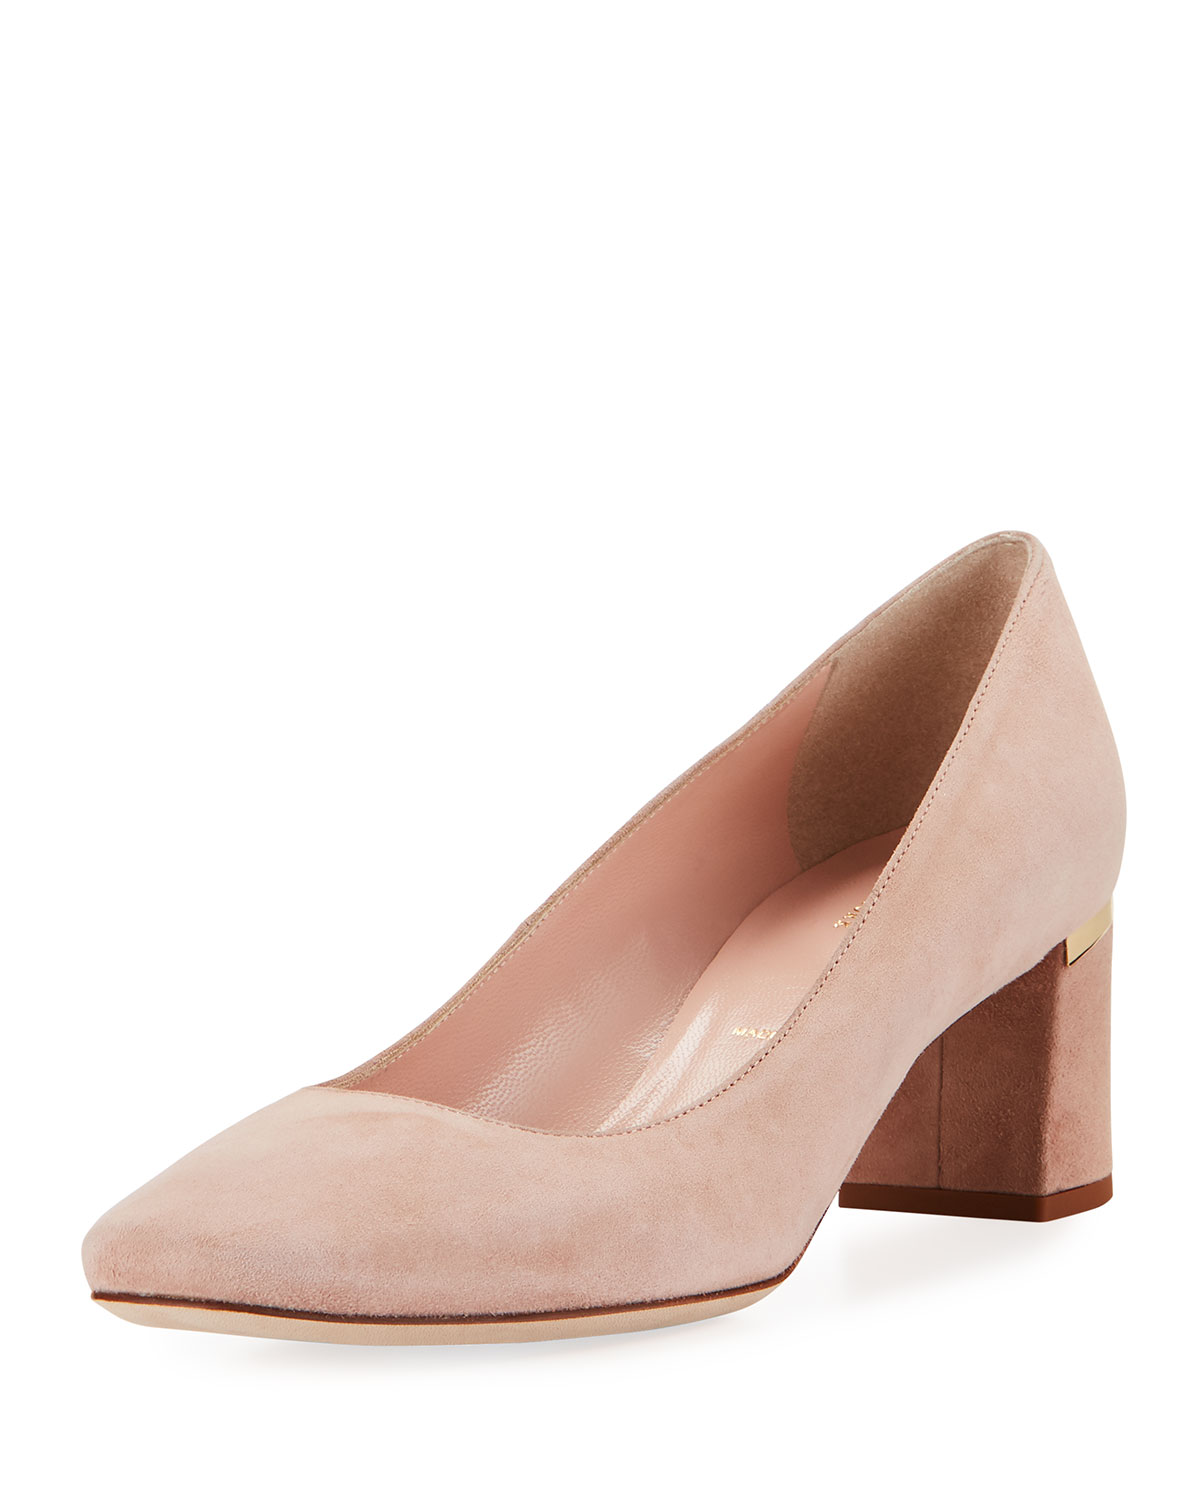 2c5bd49aa129 kate spade new york dolores too suede pump